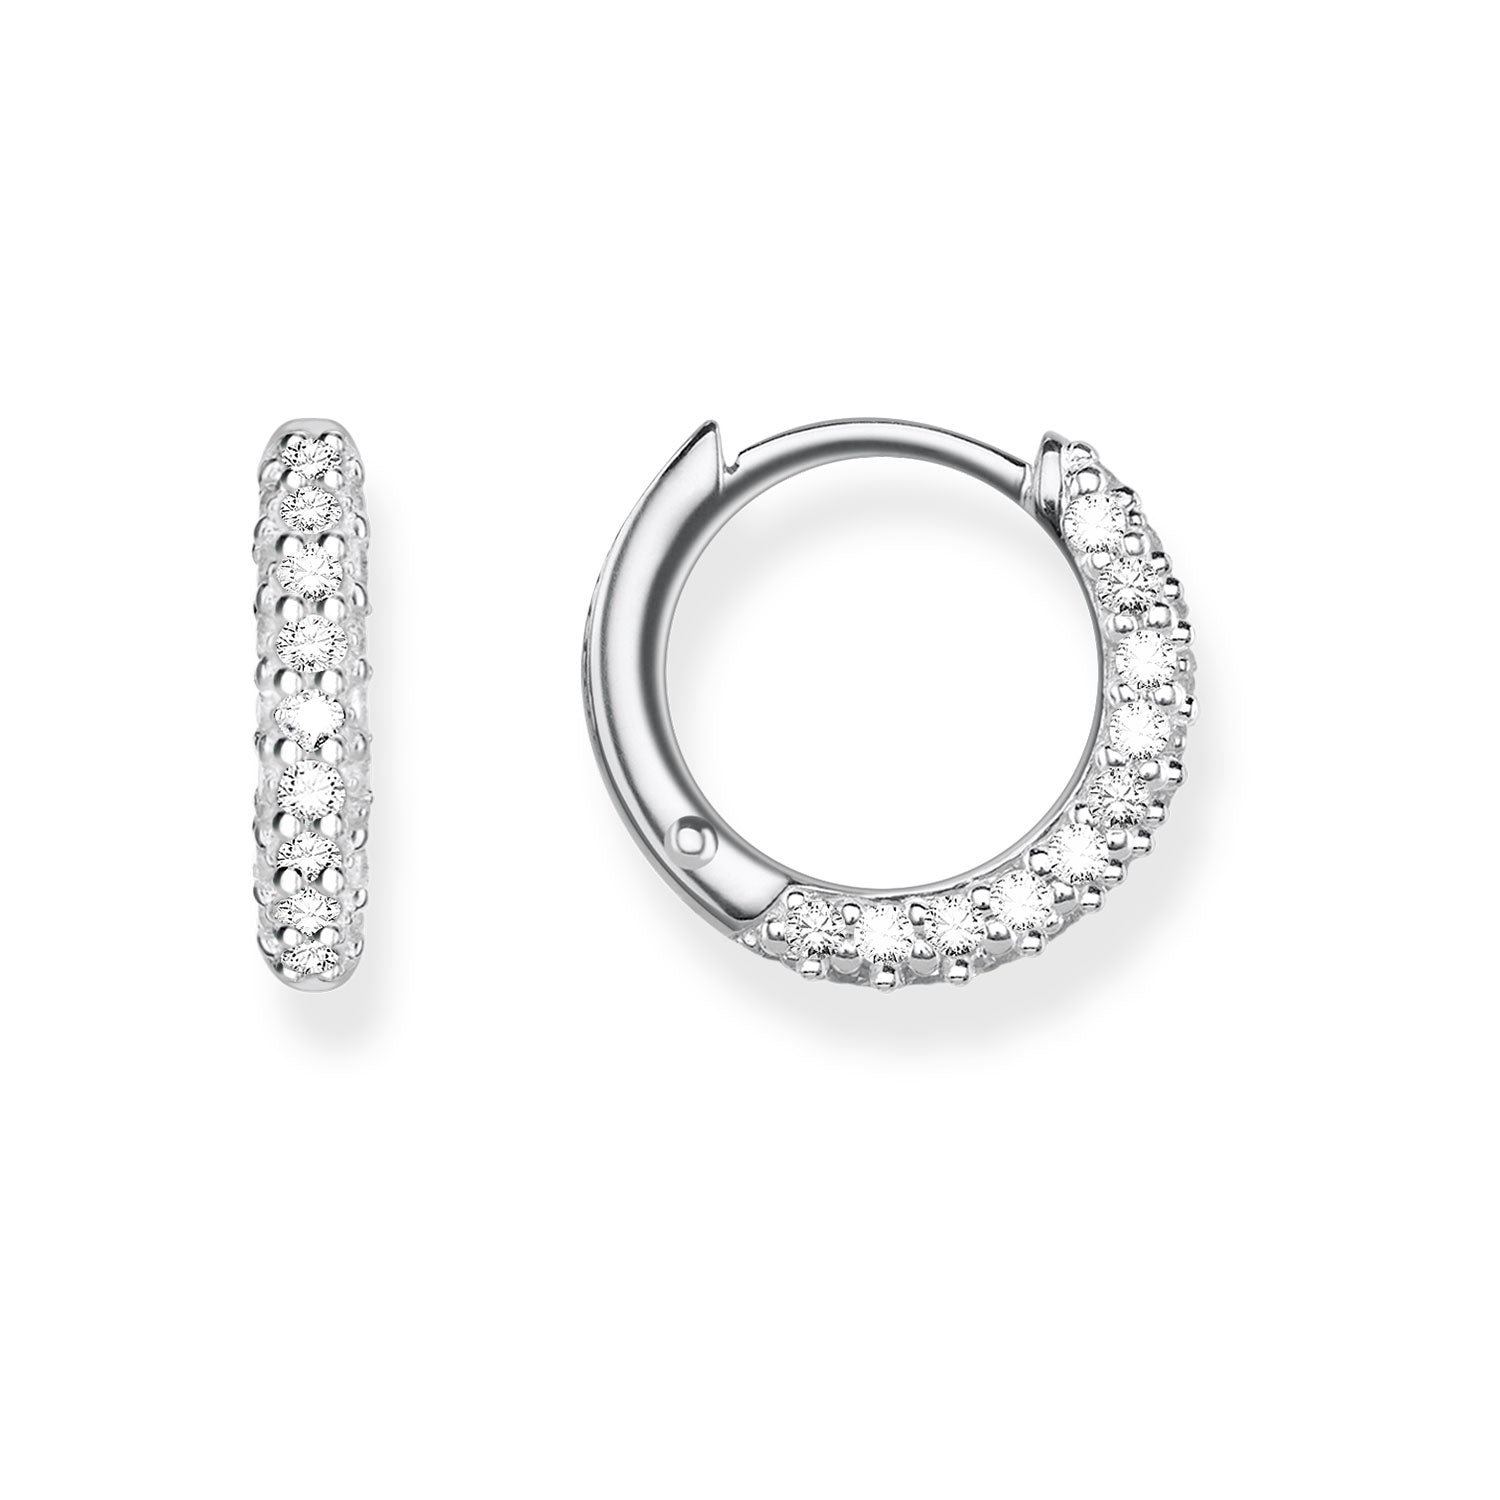 Thomas Sabo Classic Silver & Zirconia Pavé Hinged Hoop Earrings